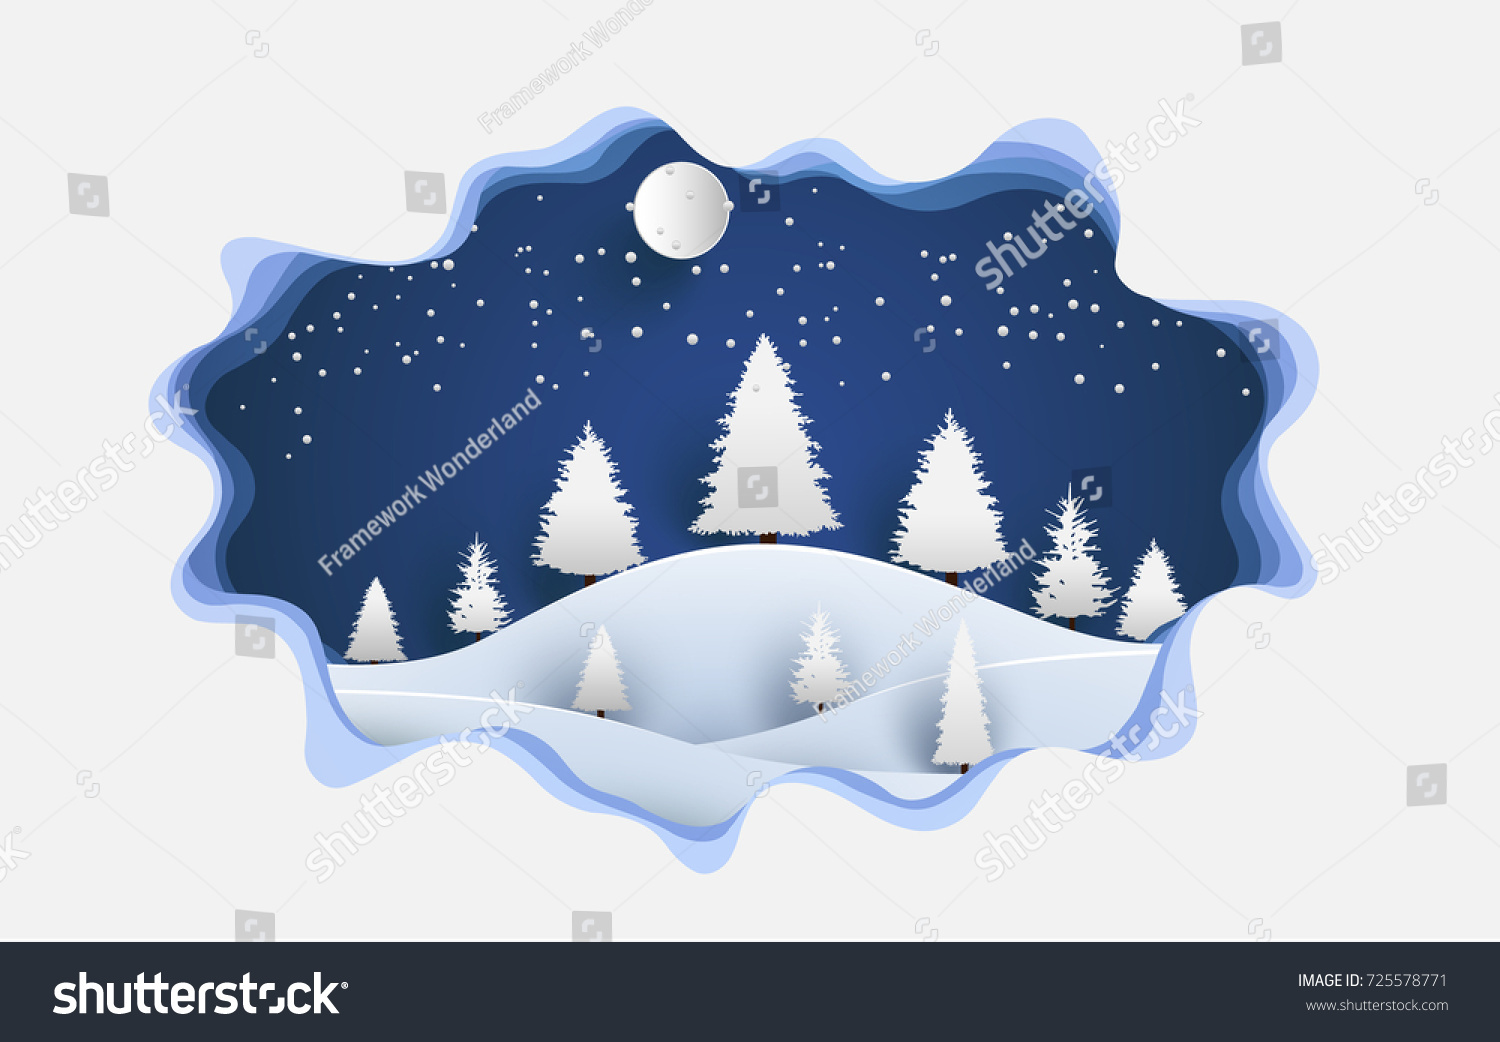 Art Paper Design Scenery Winter Snow 725578771